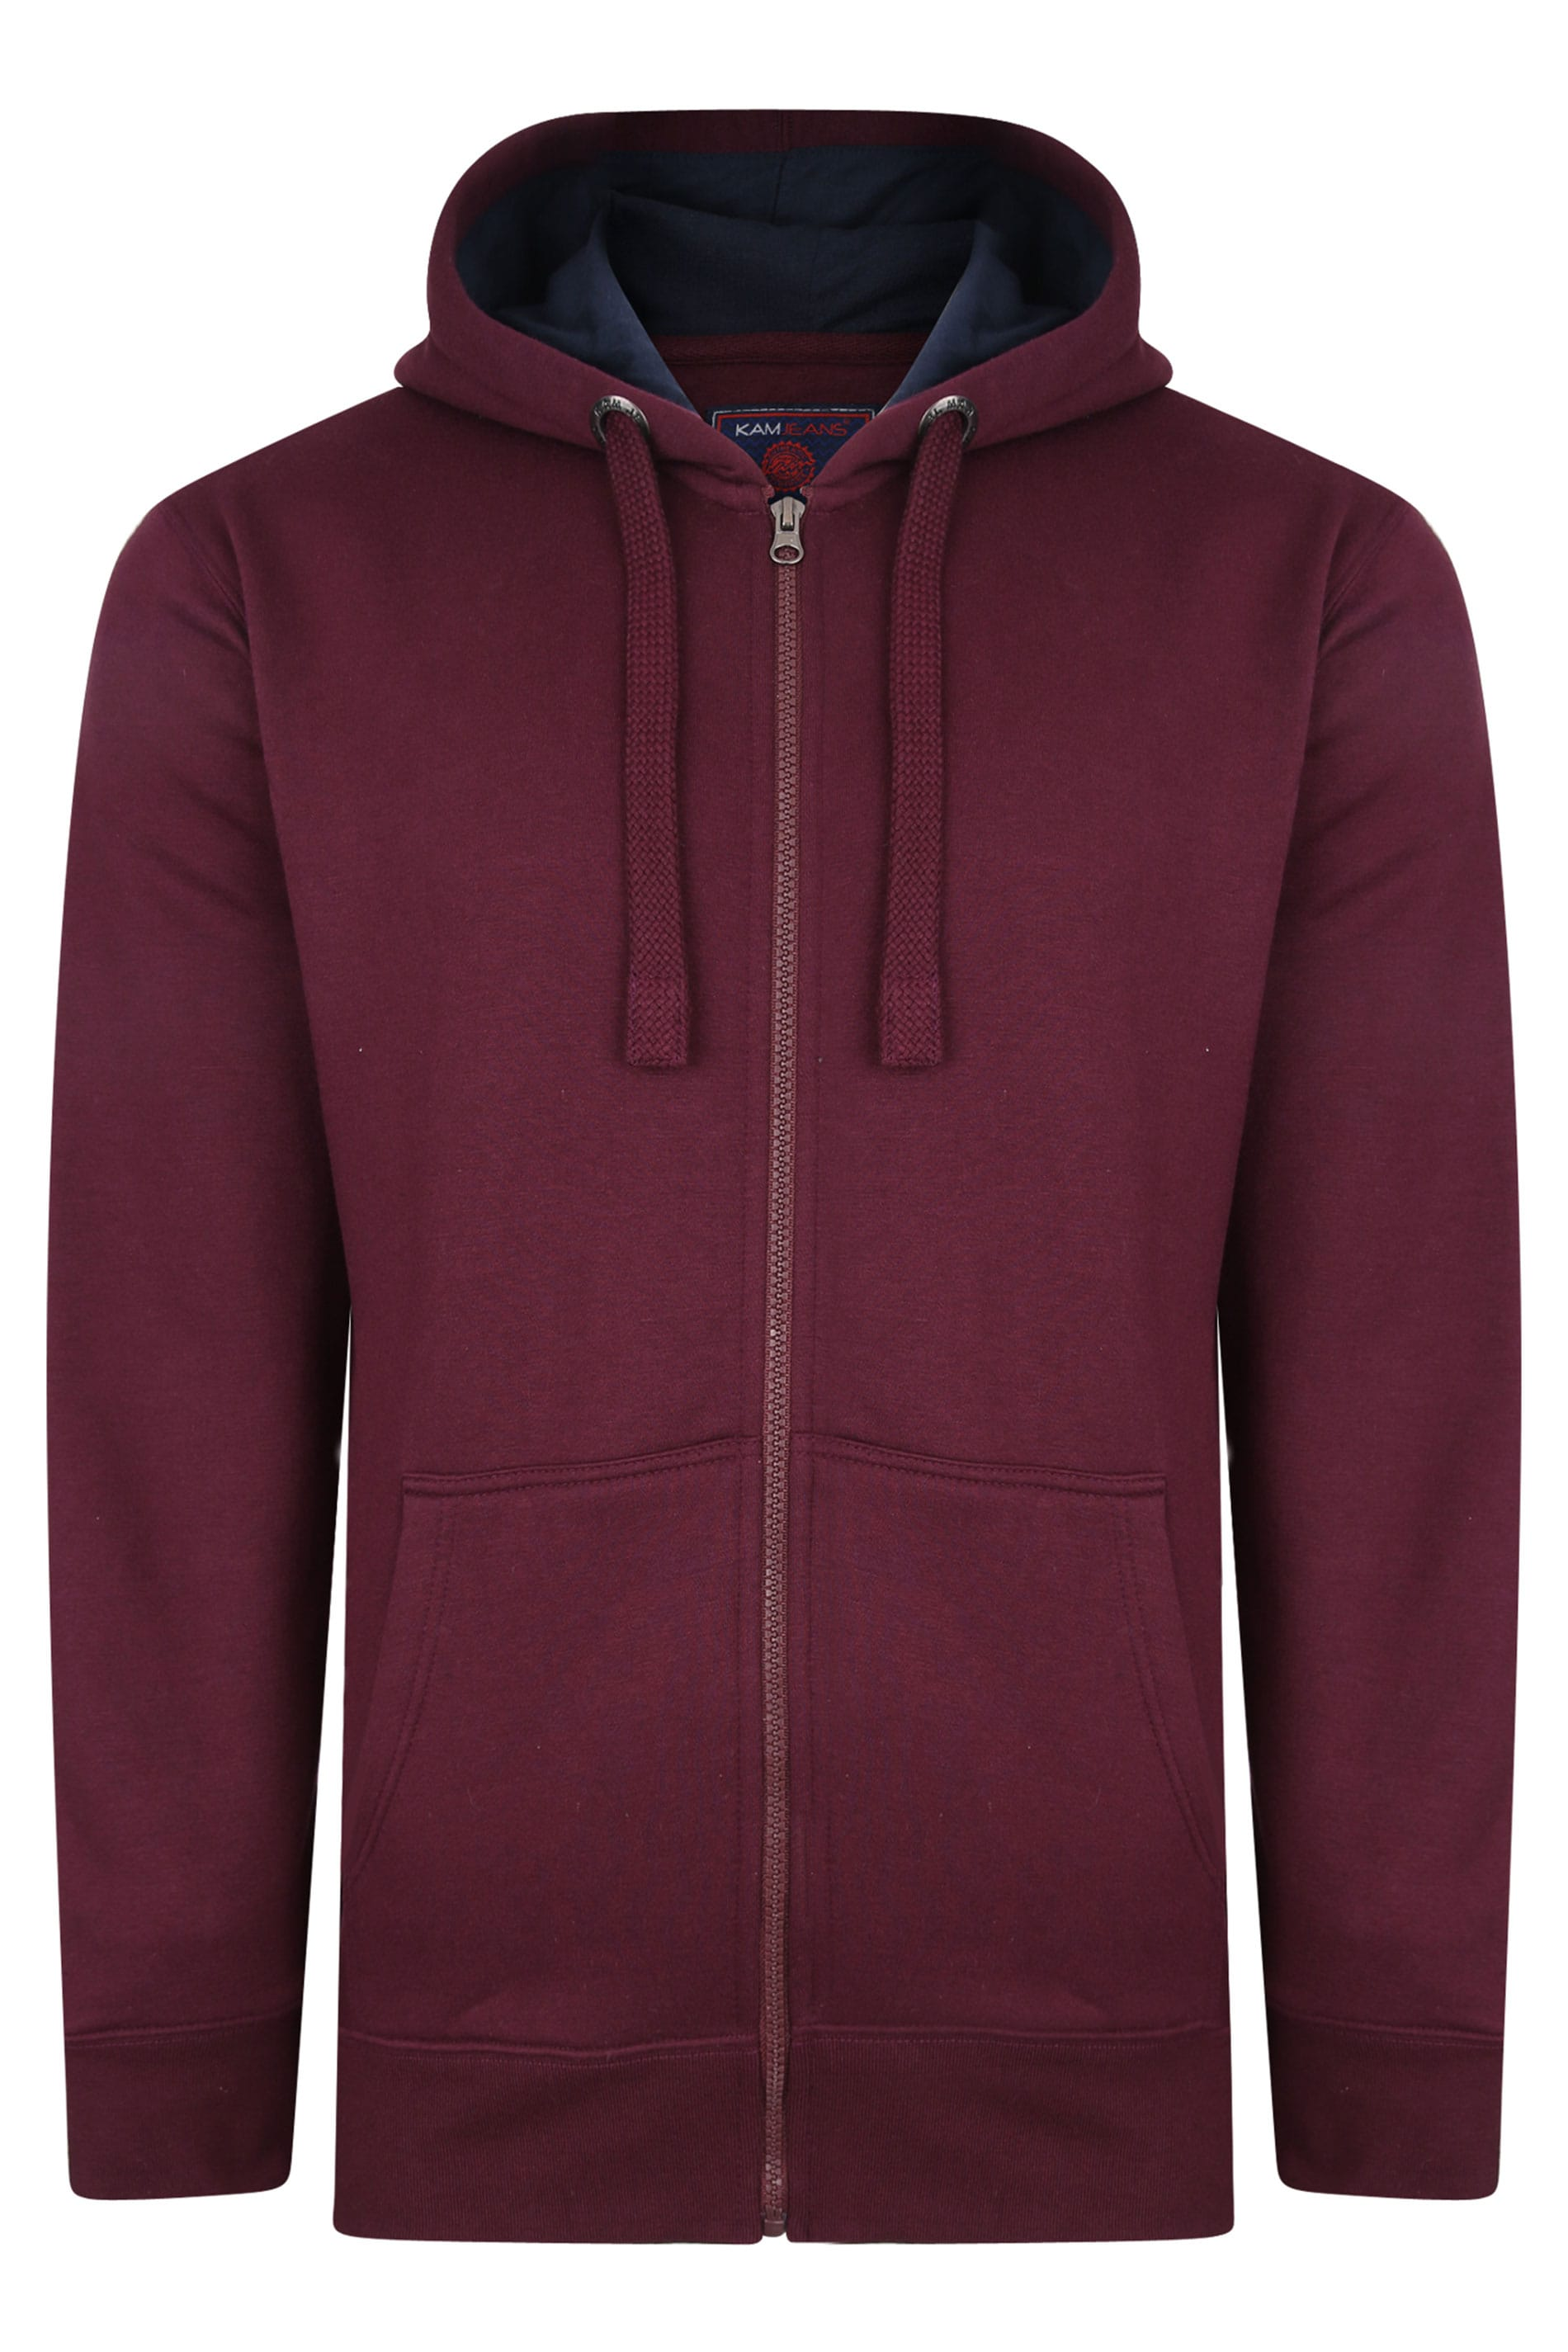 KAM Burgundy Zip Through Hoodie